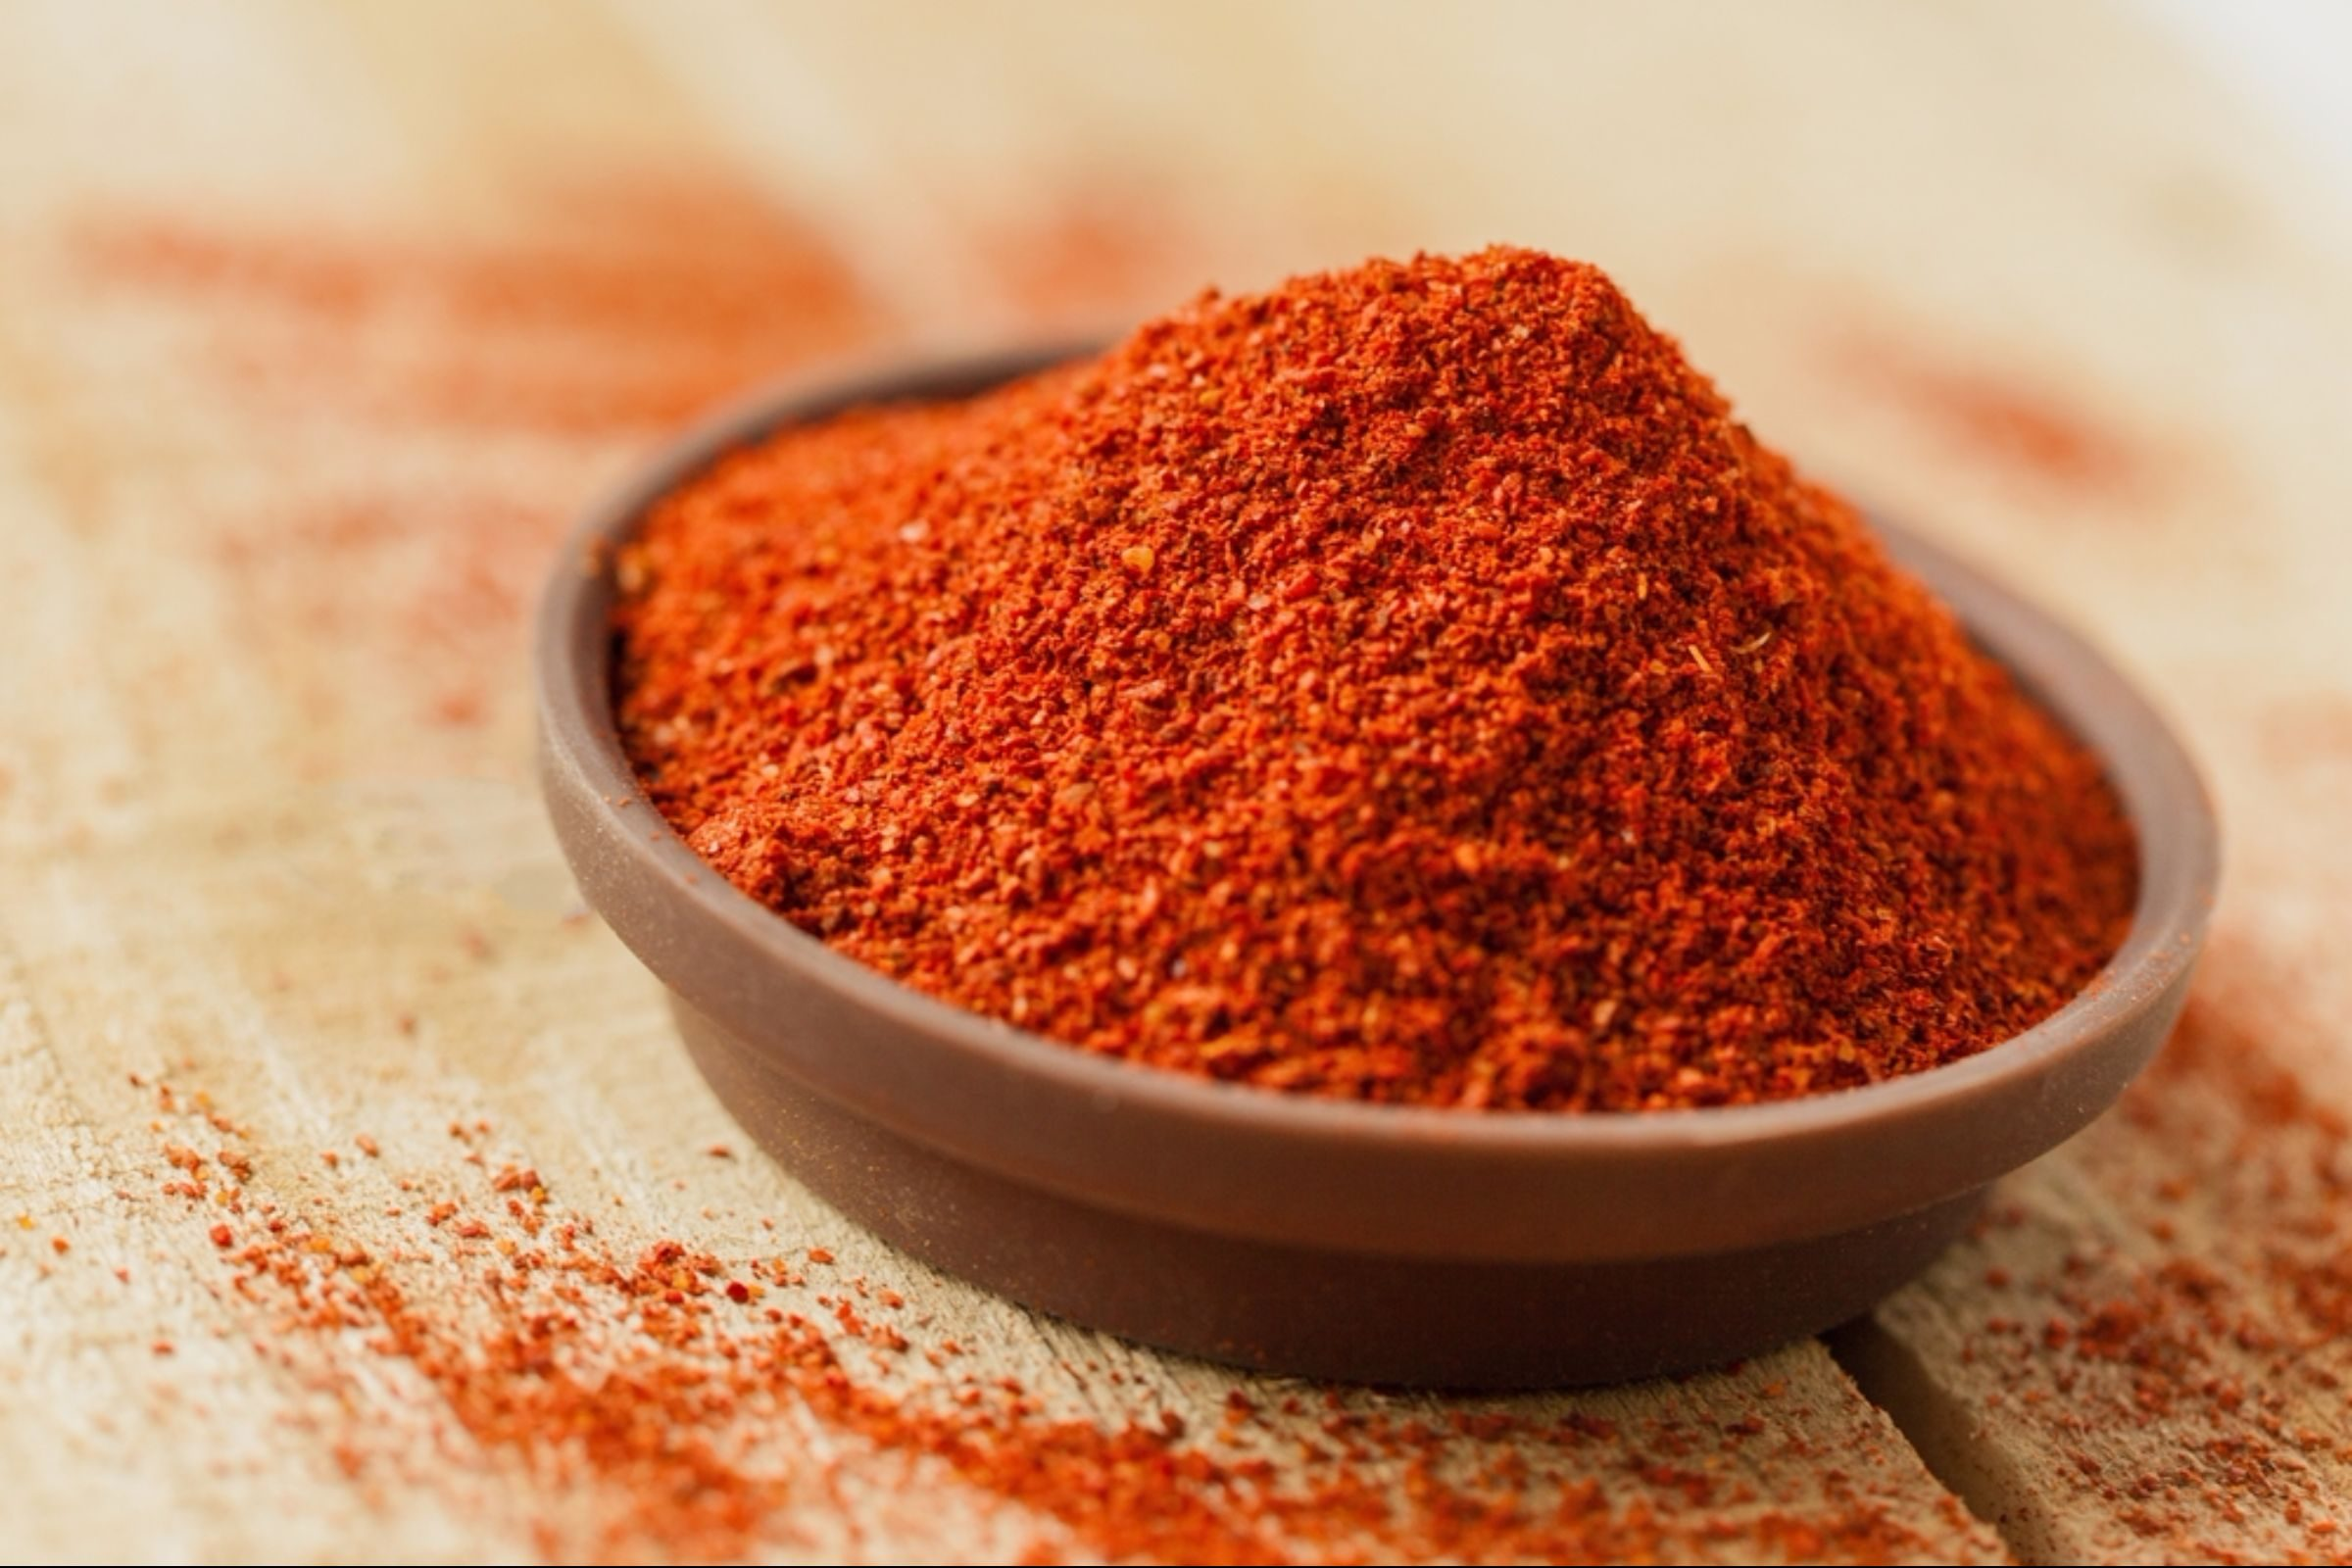 Smoked paprika powder